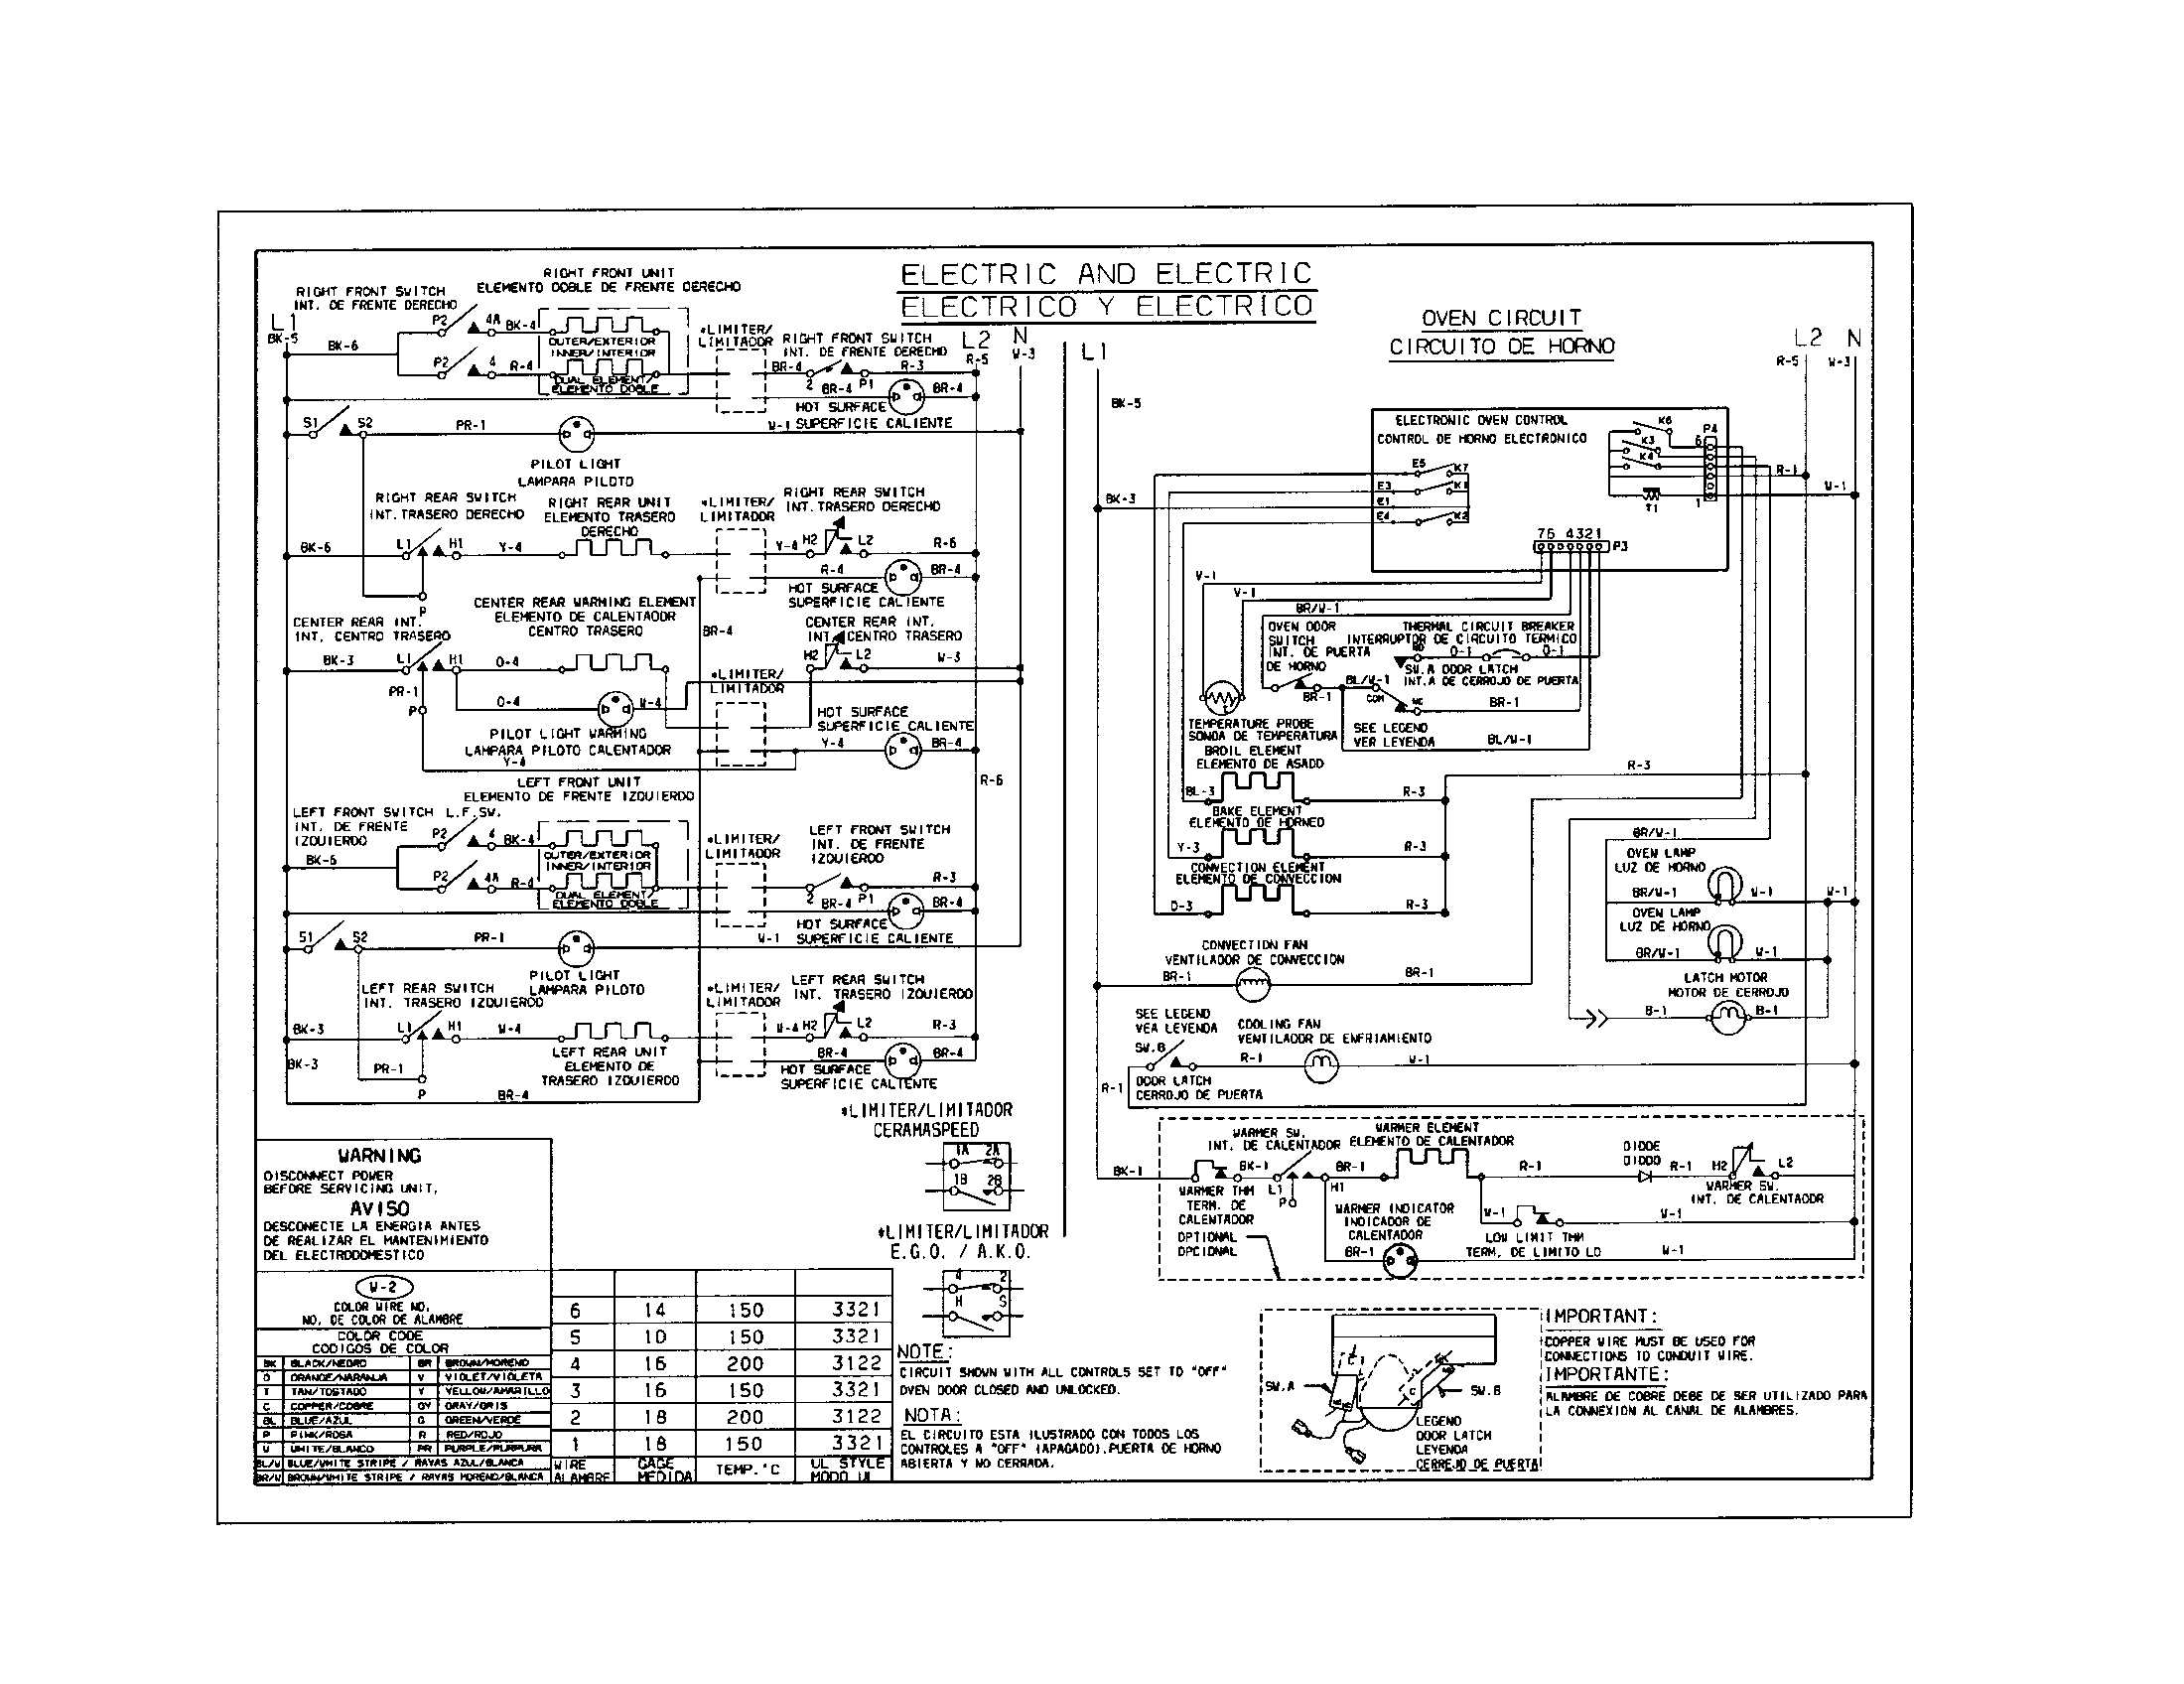 Elite Electric Motors Wiring Diagram Diagrams Marathon Motor Elec Kenmore 79046803993 Slide In Range Timer 120v Reversible